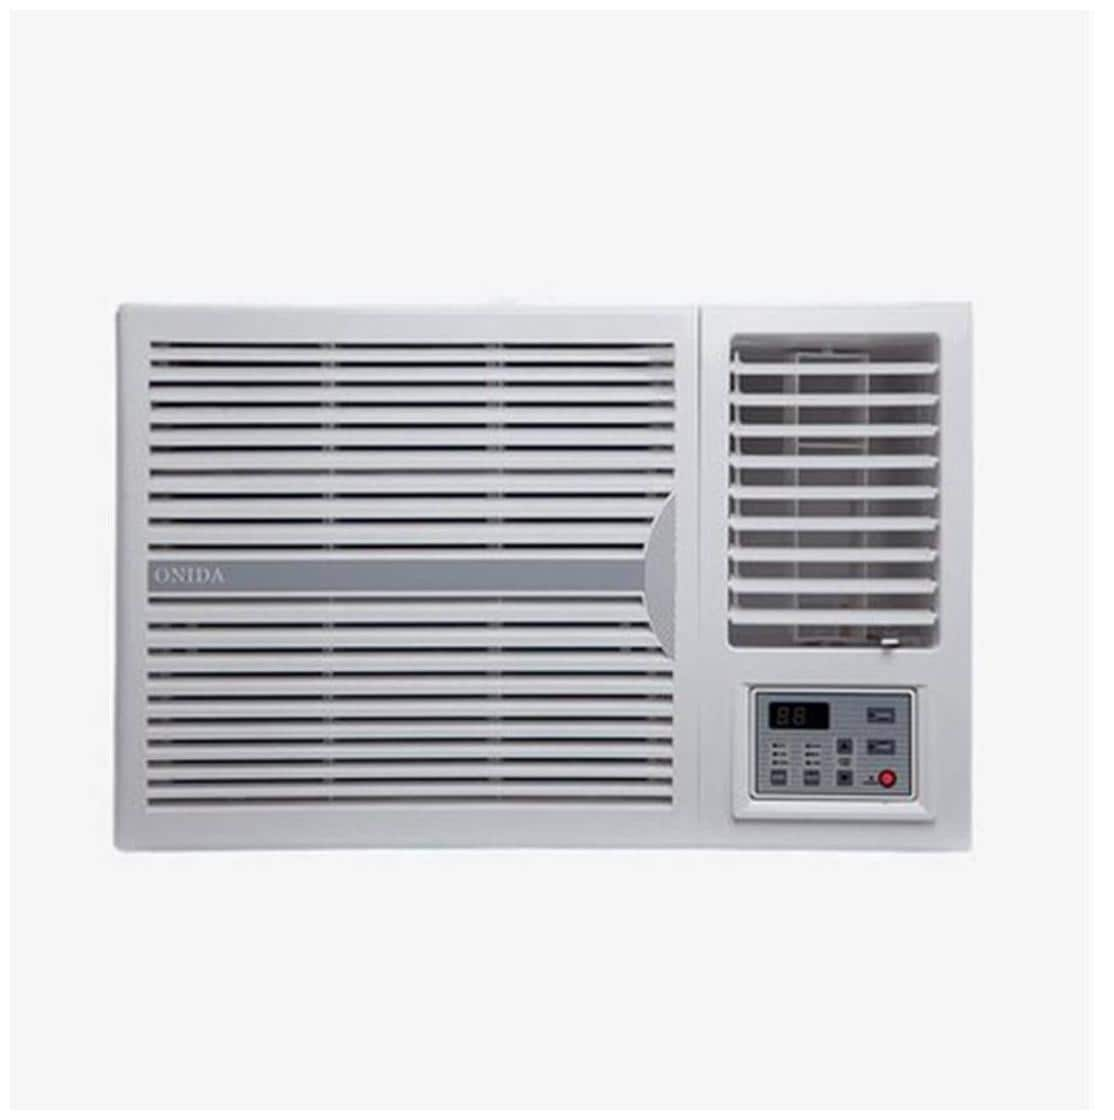 Onida 1.5 Ton 3 Star Window AC (Copper Condensor, WA183FLT, White)